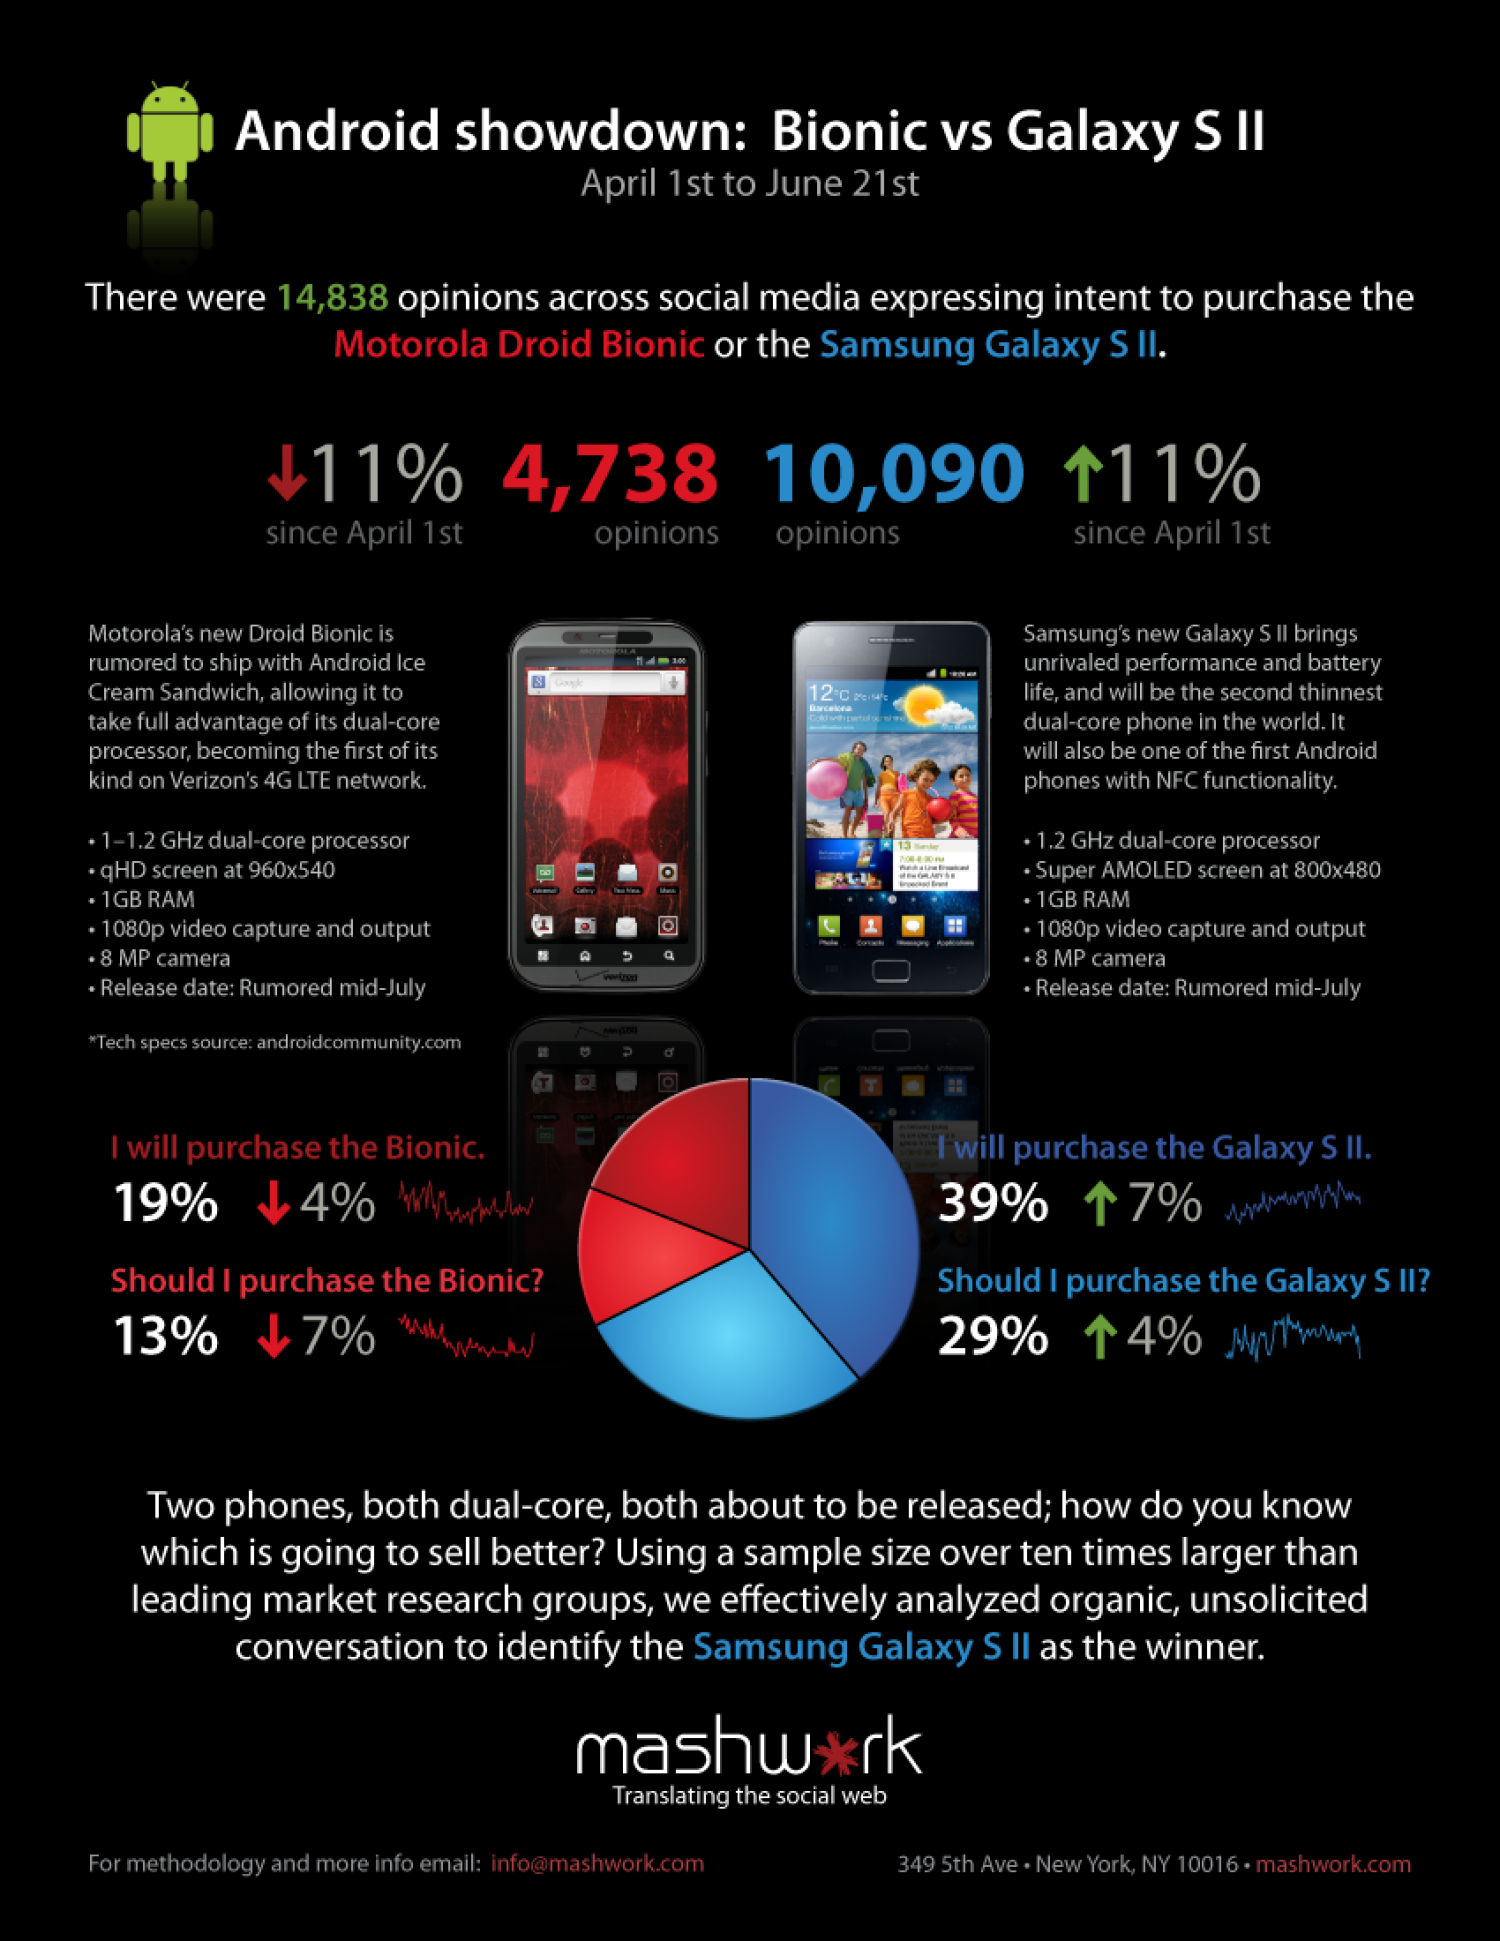 Android Showdown: Bionic vs. Galaxy SII Infographic